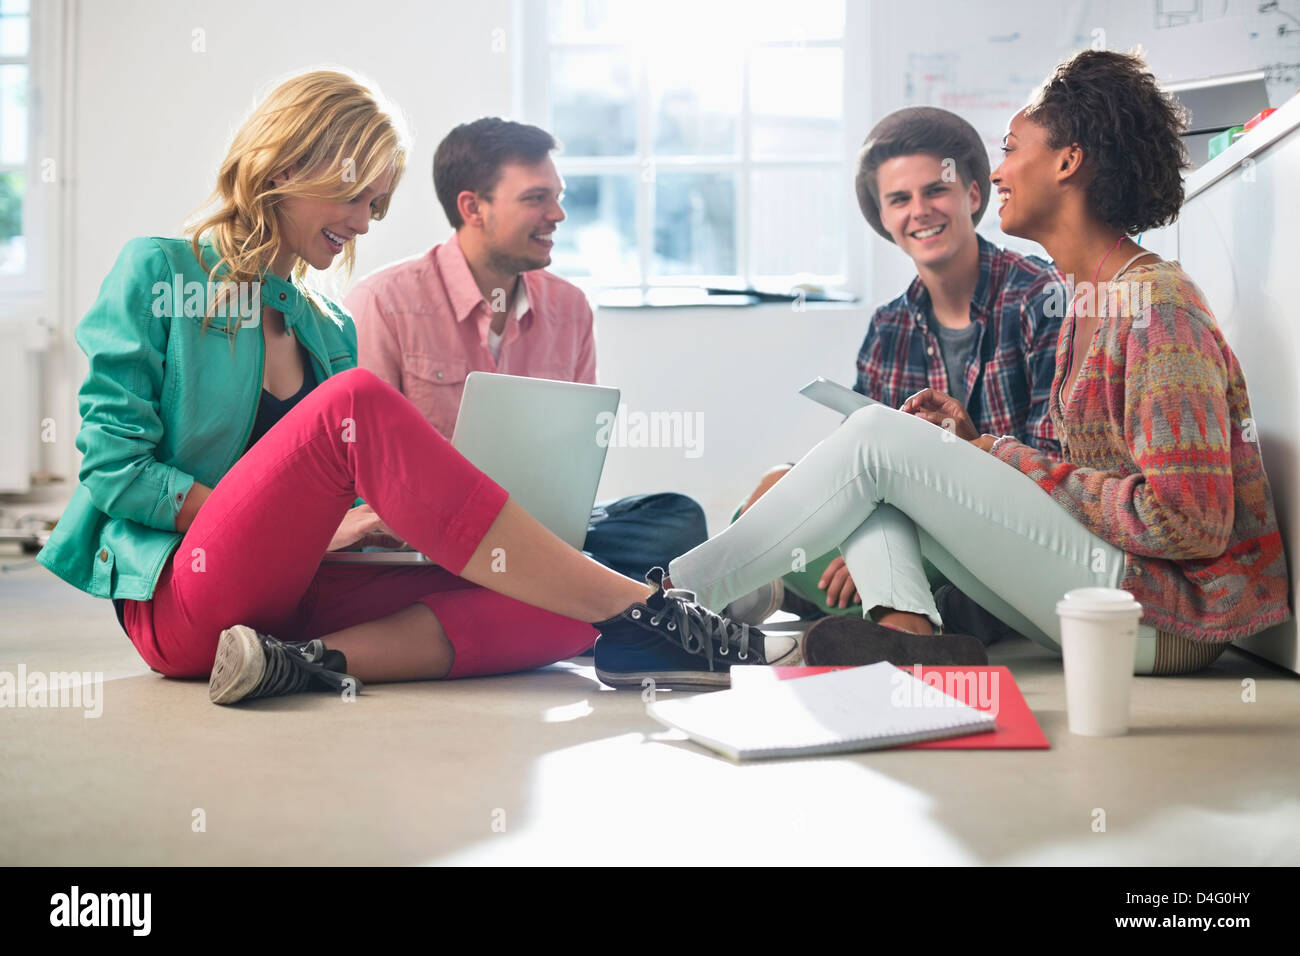 Business people talking on floor in office - Stock Image